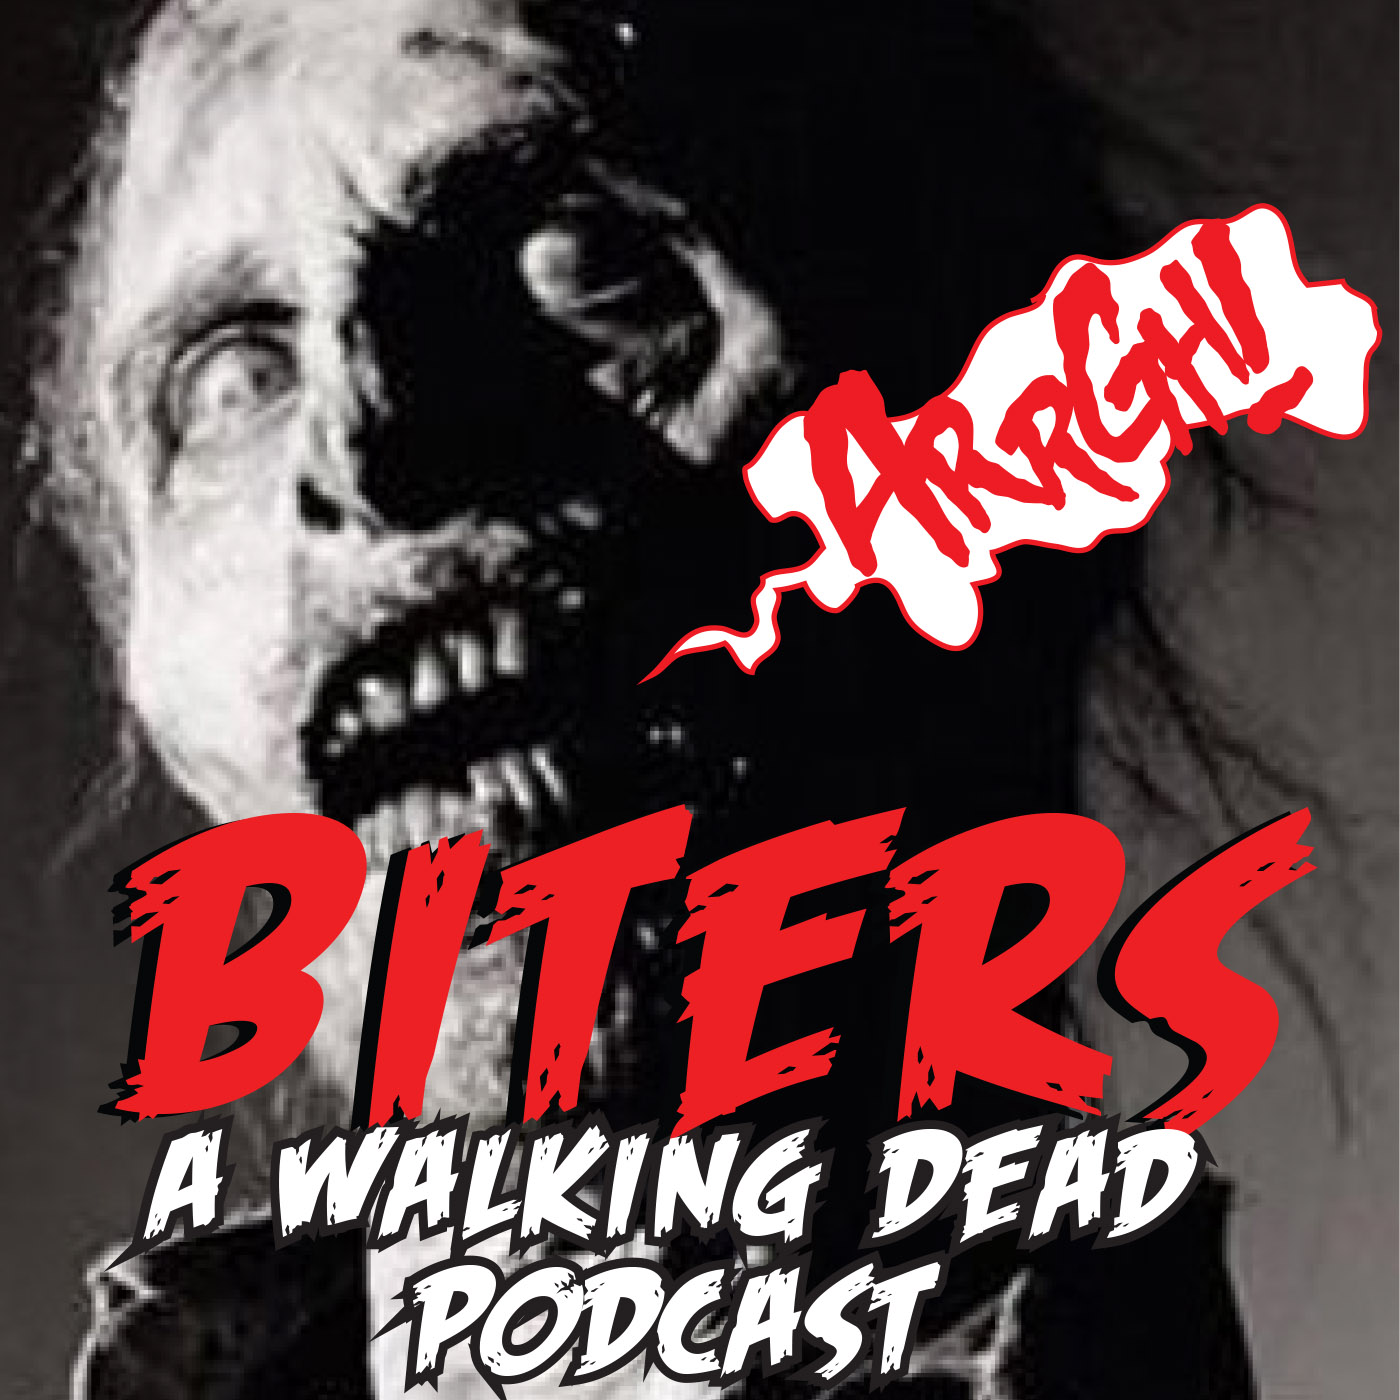 Biters: The Walking Dead Podcast with Dianne